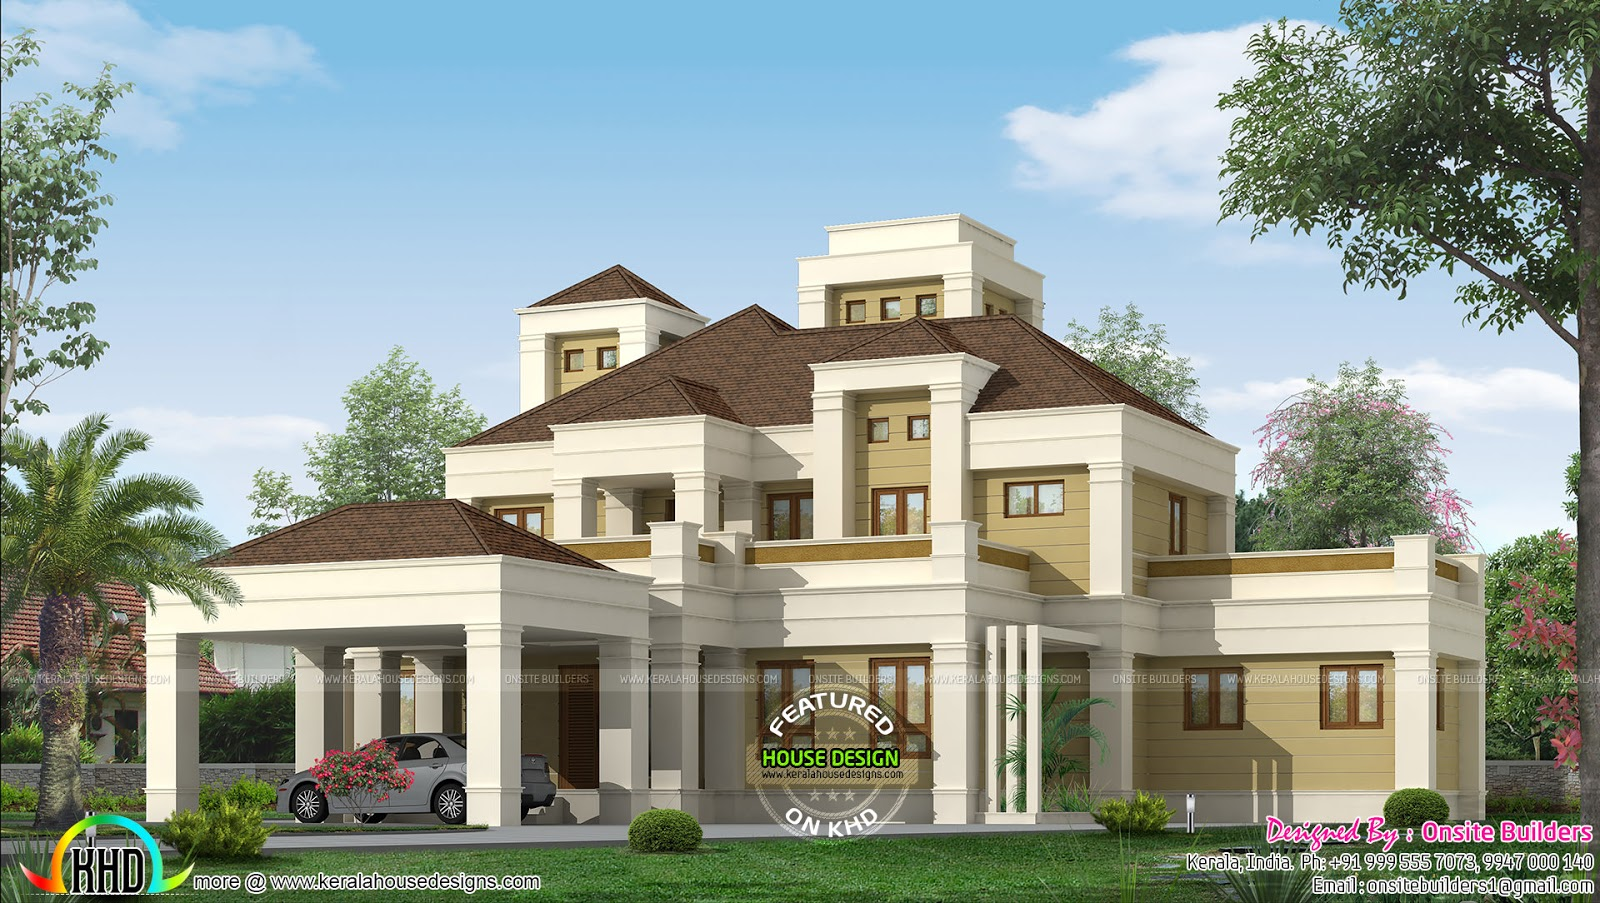 Elegant colonial home plan kerala home design and floor for Elegant farmhouse plans